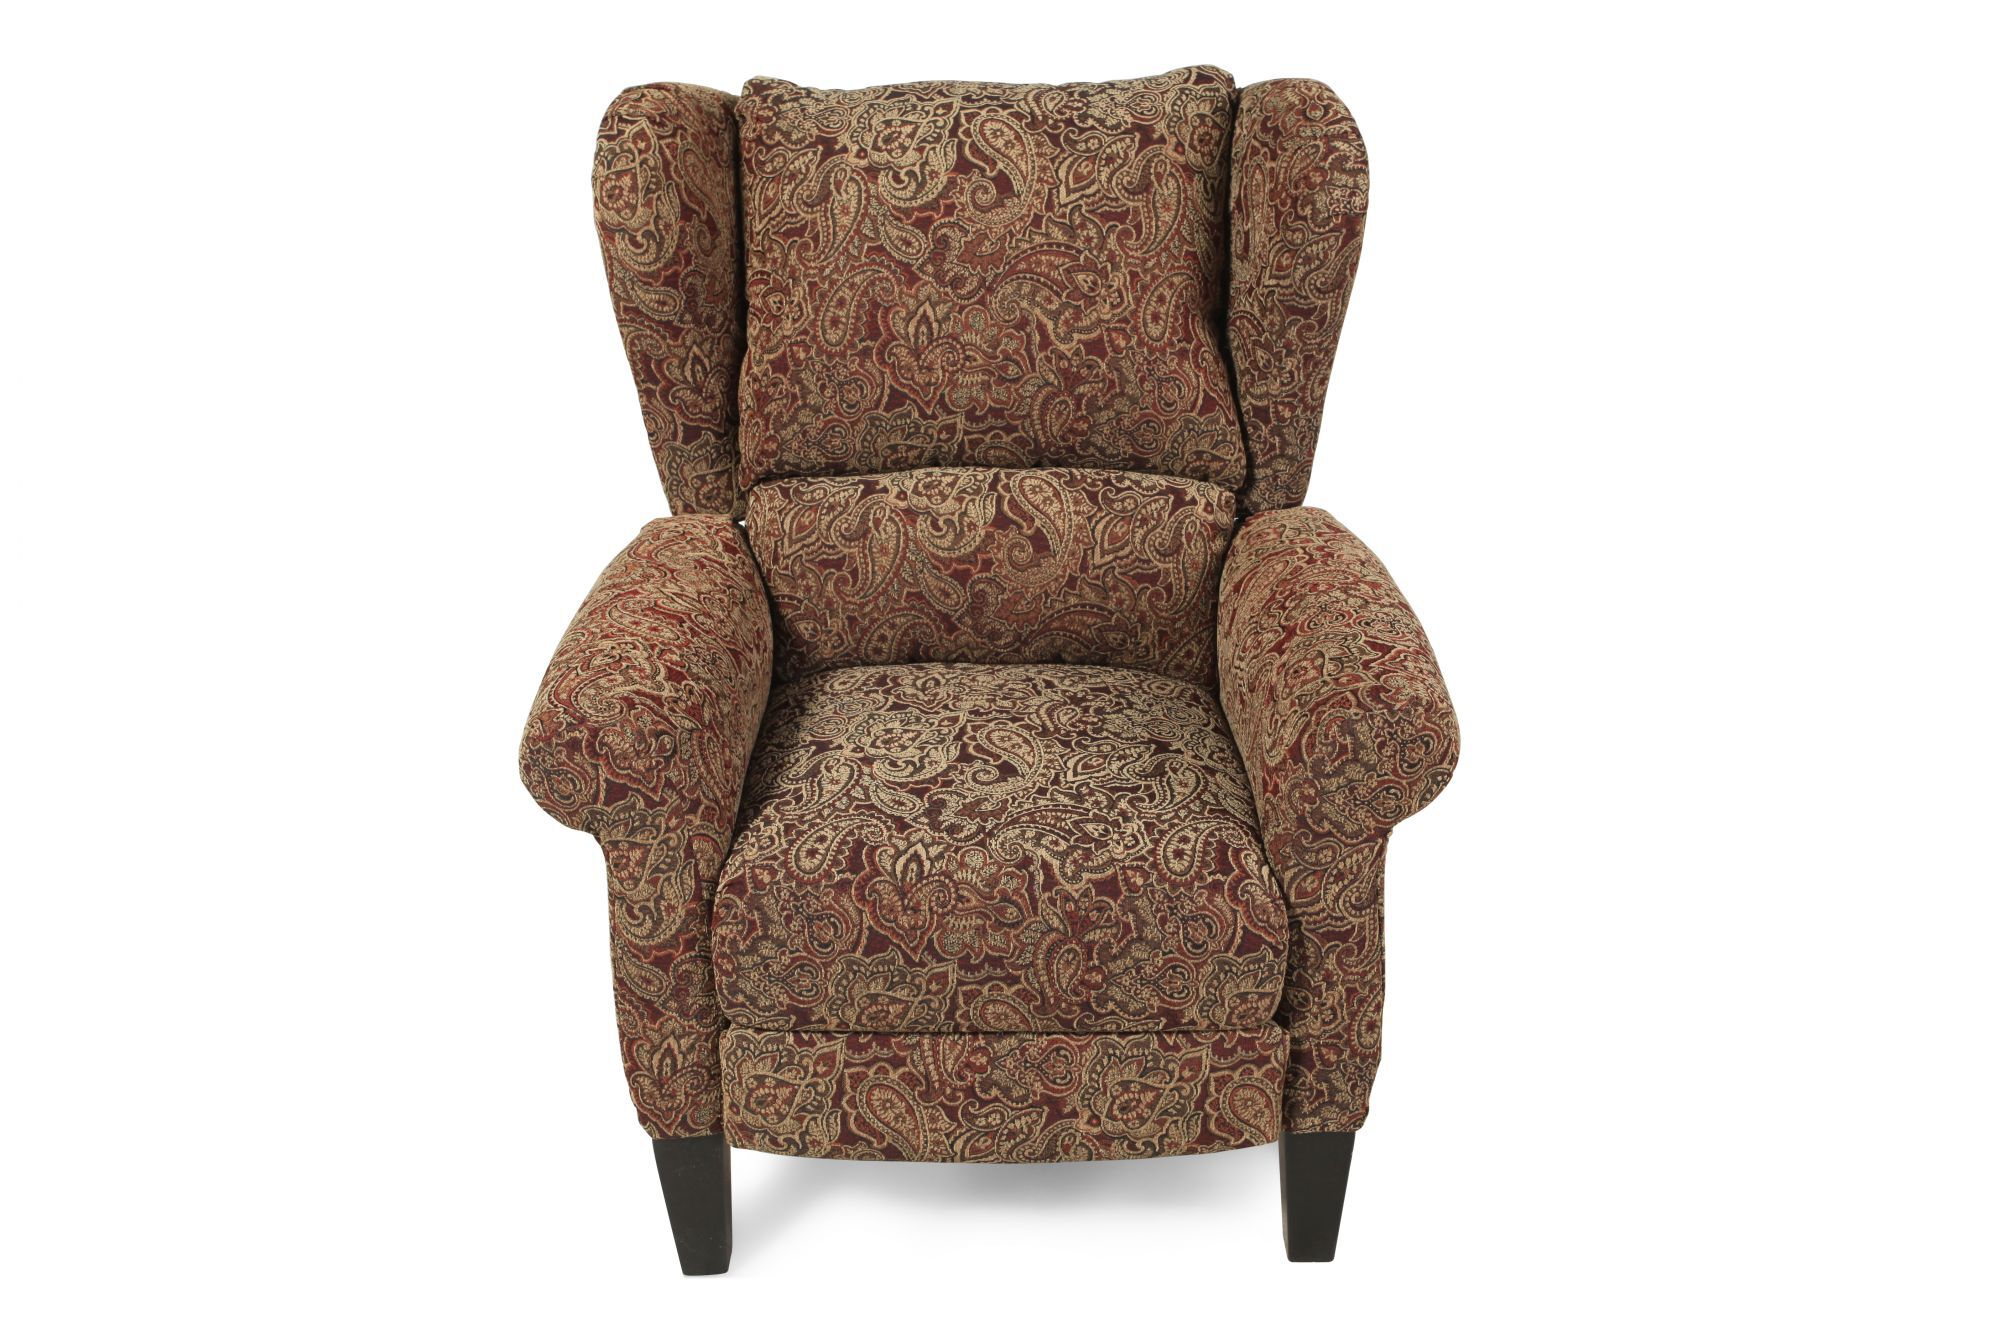 PaisleyPatterned Traditional HighLeg Recliner  Mathis